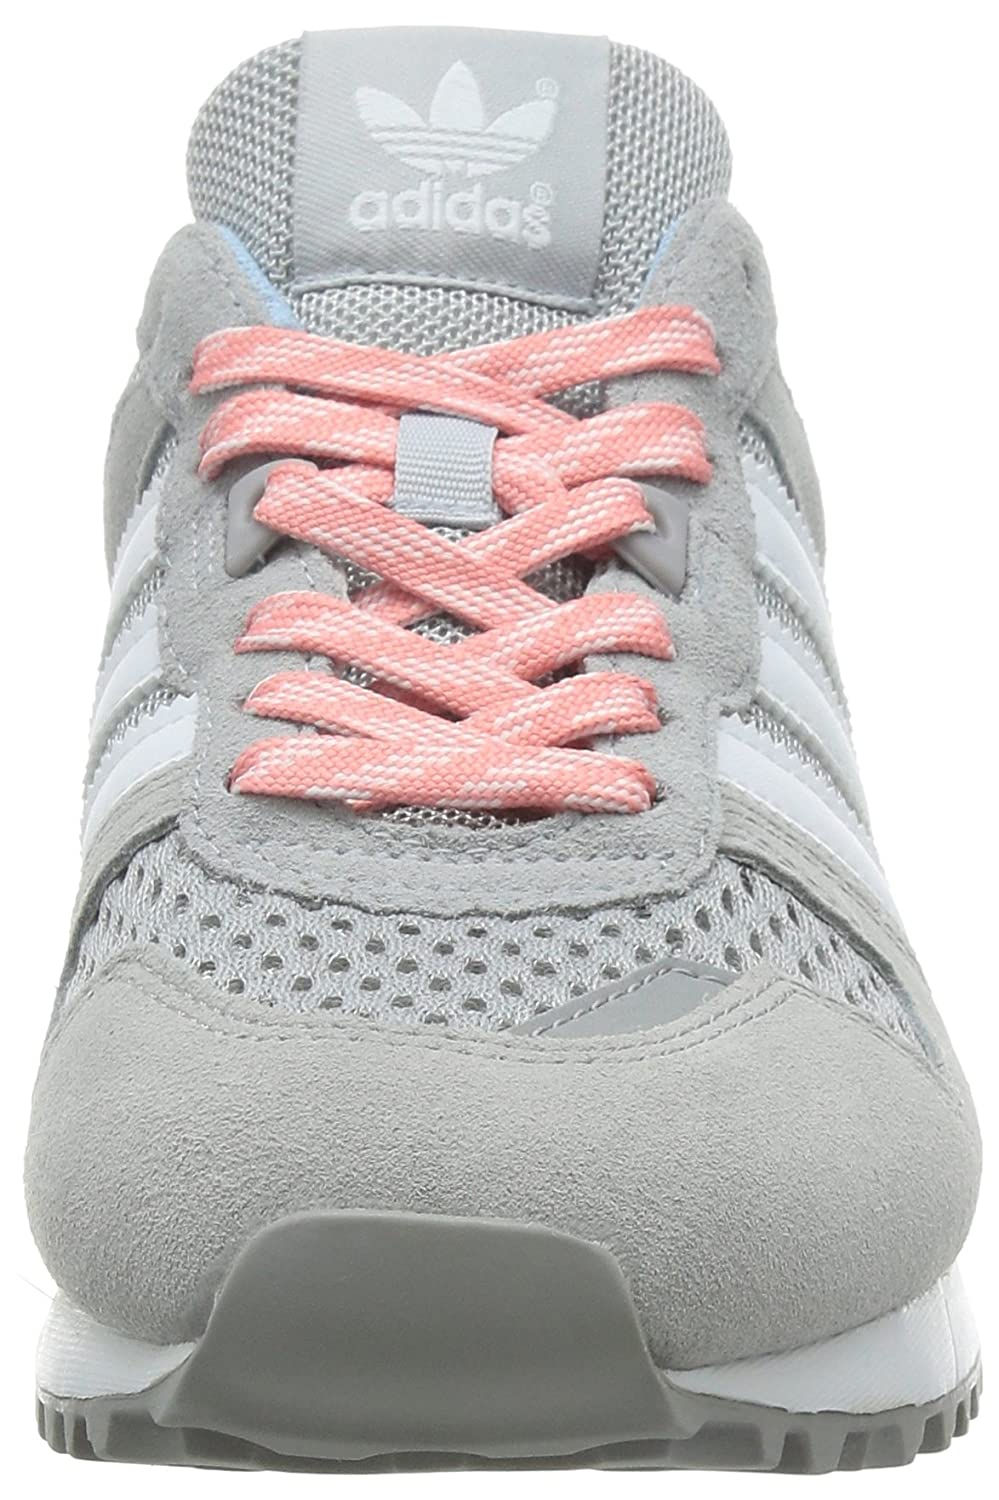 quality design 15dc3 d3b51 ... where to buy adidas damen zx 700 w turnschuhe gris blanco rosa grasua  ftwbla rosmel 44